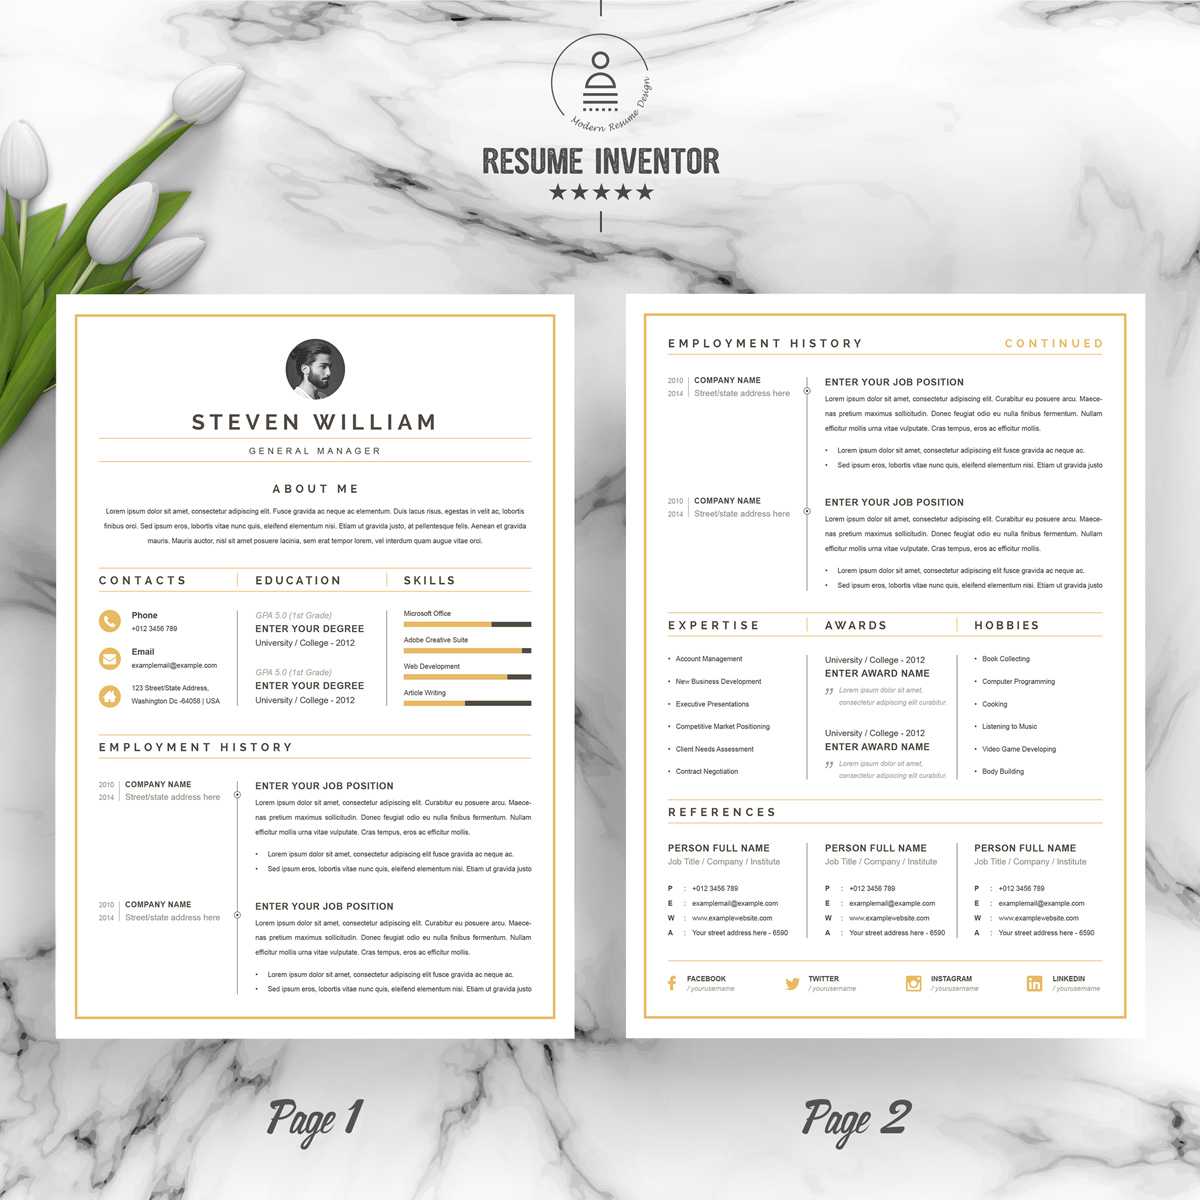 https://s3u.tmimgcdn.com/1860567-1580627614207_02_2-Pages-Free-Resume-Design-Template.jpg